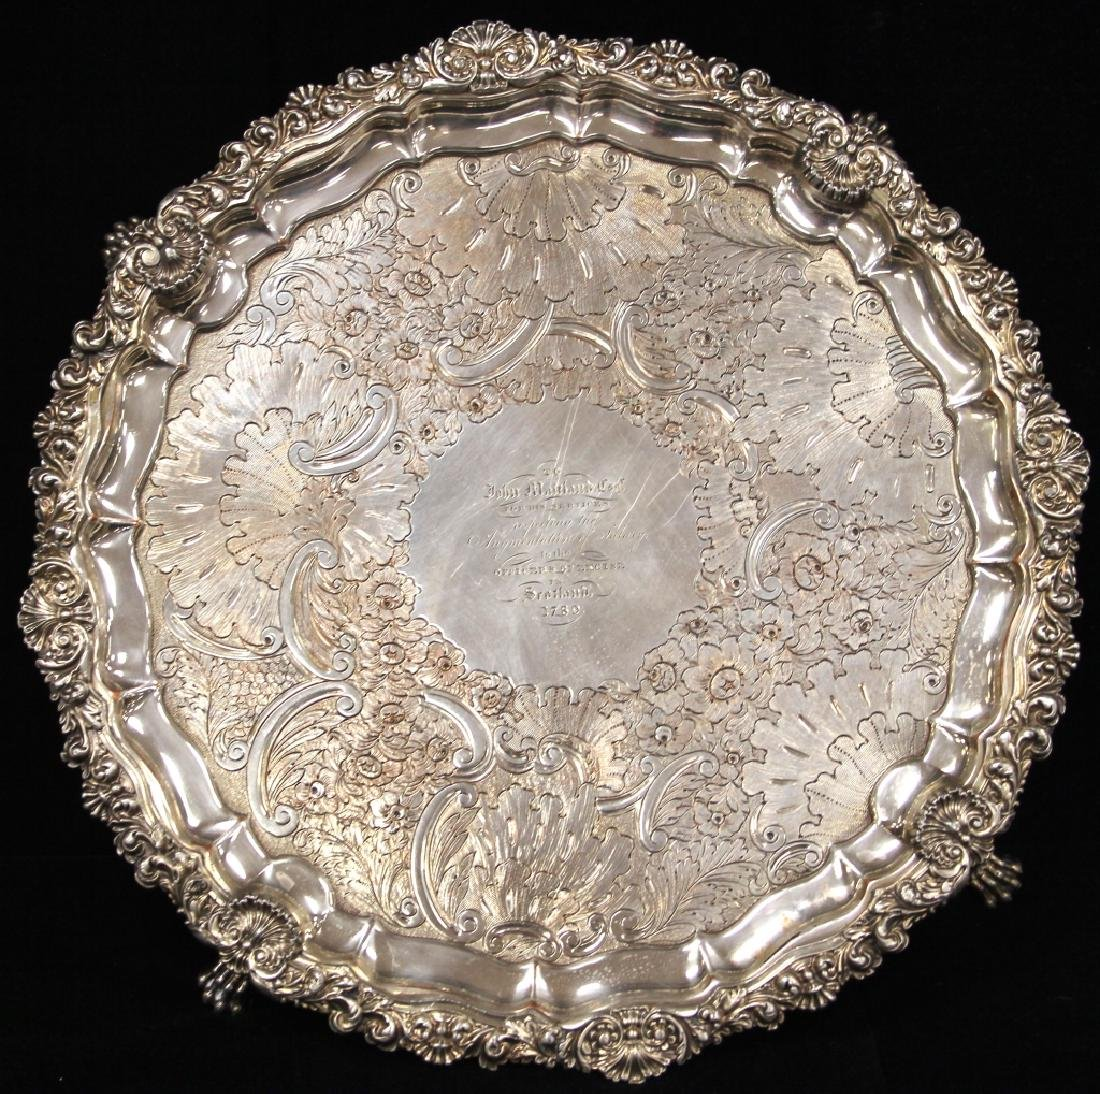 GEORGIAN SILVER PLATED FOOTED PRESENTATION TRAY